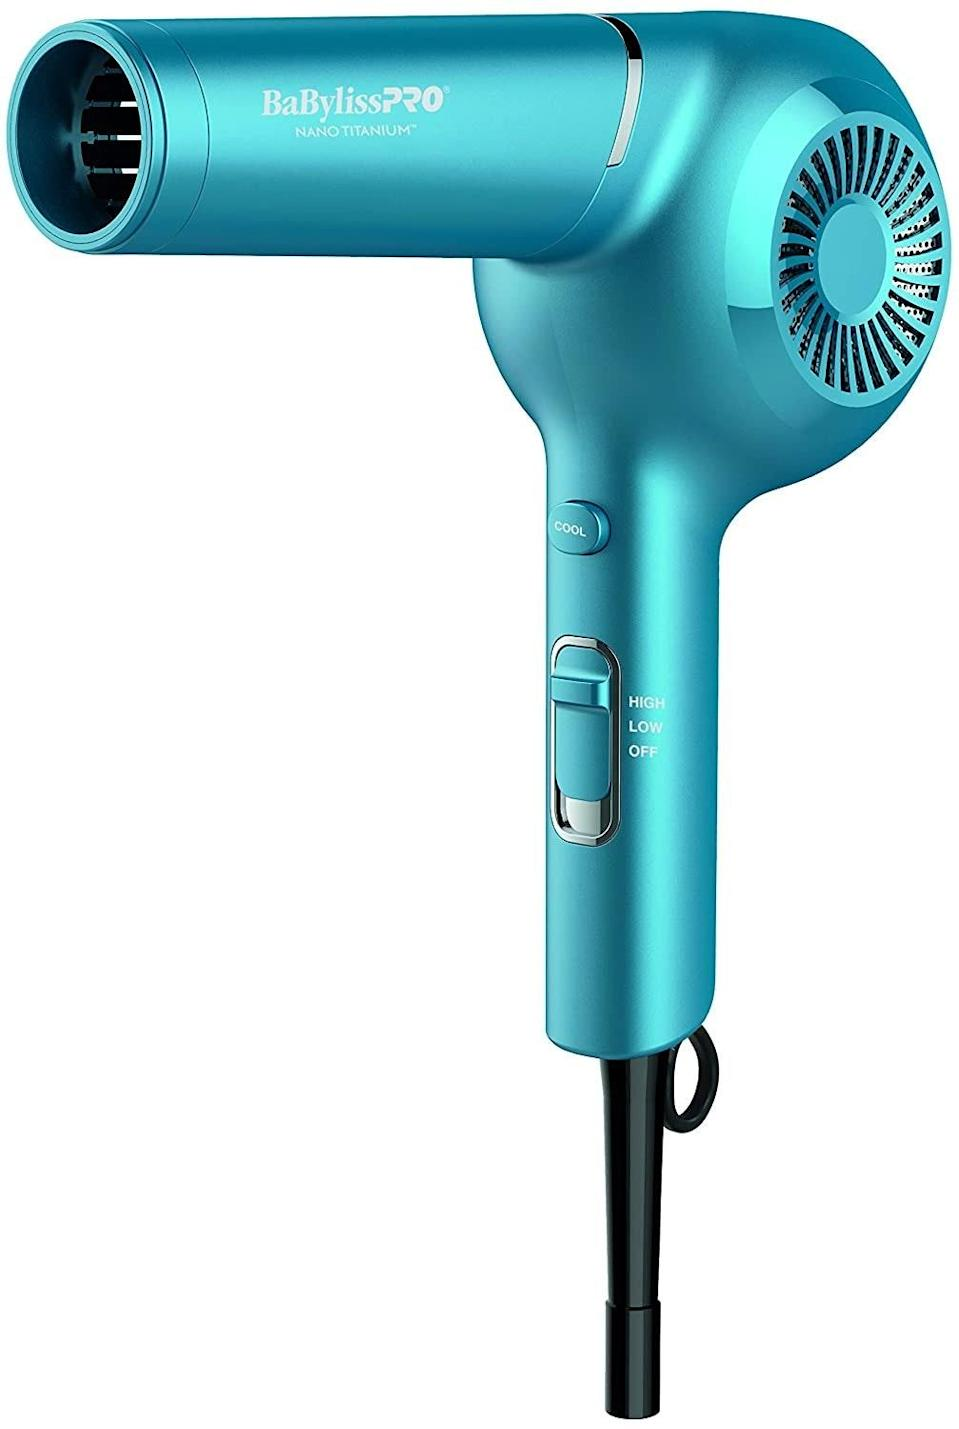 """Kayganich regularly recommends the BabylissPro Nano Titanium Classic Pistol Grip Dryer to her clients. """"I actually use this one at home,"""" she says. """"I have had mine for about eight years now, and it shows no sign of slowing down."""" She recommends diffusing on low heat and low speed, and this dryer makes it so easy with three settings of low, medium, and high. """"This is important for people with curly hair because we need to be able to minimize damage and frizz when we want to have a longer-lasting style and healthy hair,"""" Kayganich says."""